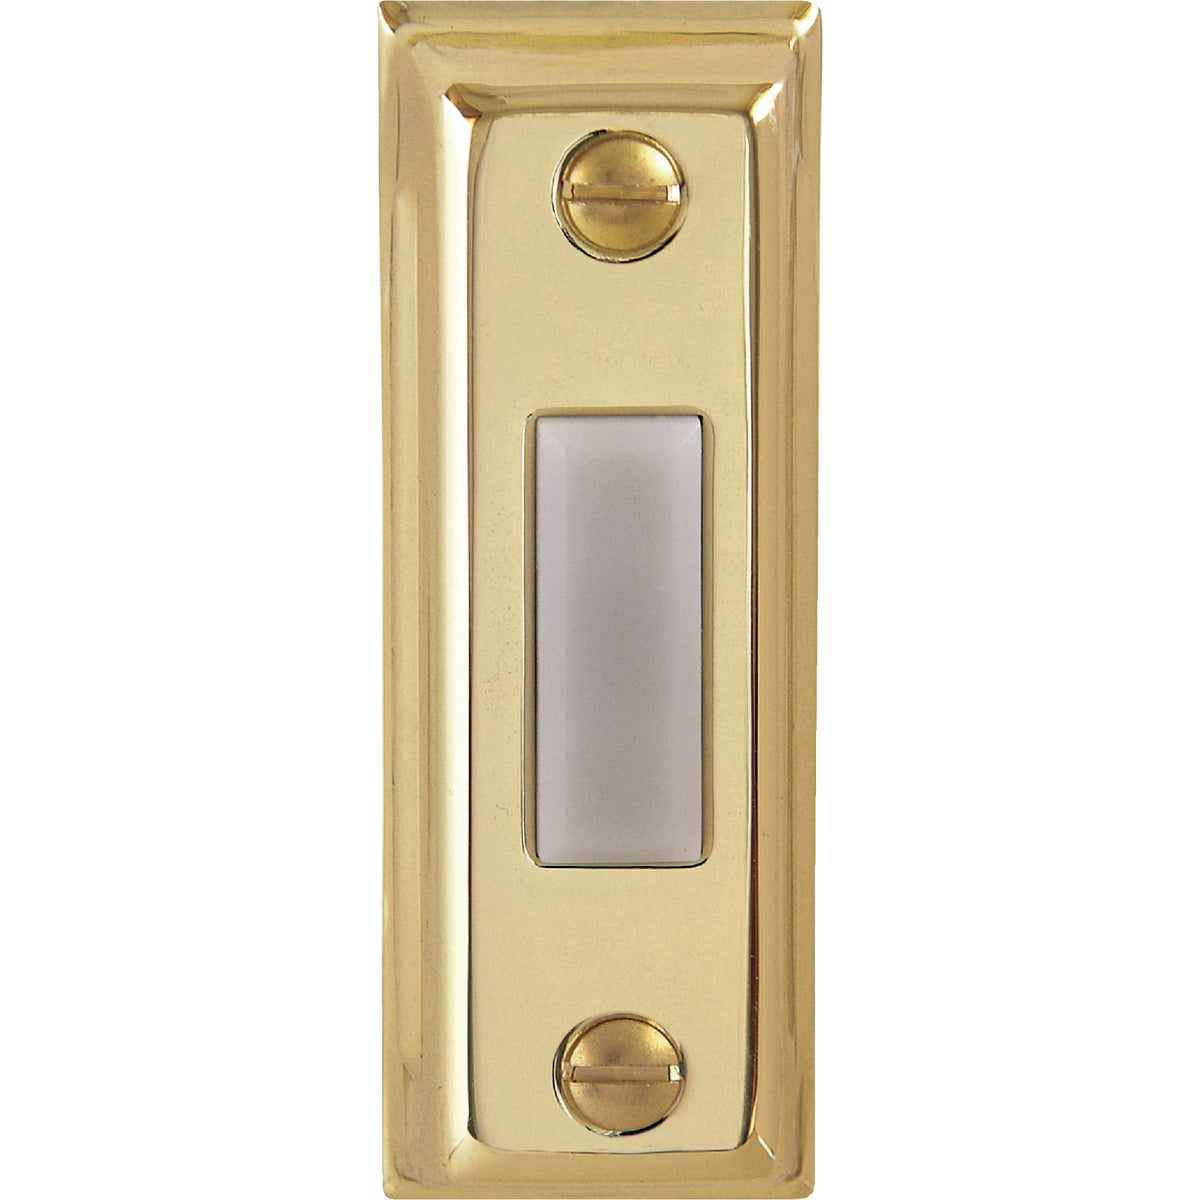 GOLD LIGHTED PUSH-BUTTON - DH1505L by Thomas & Betts